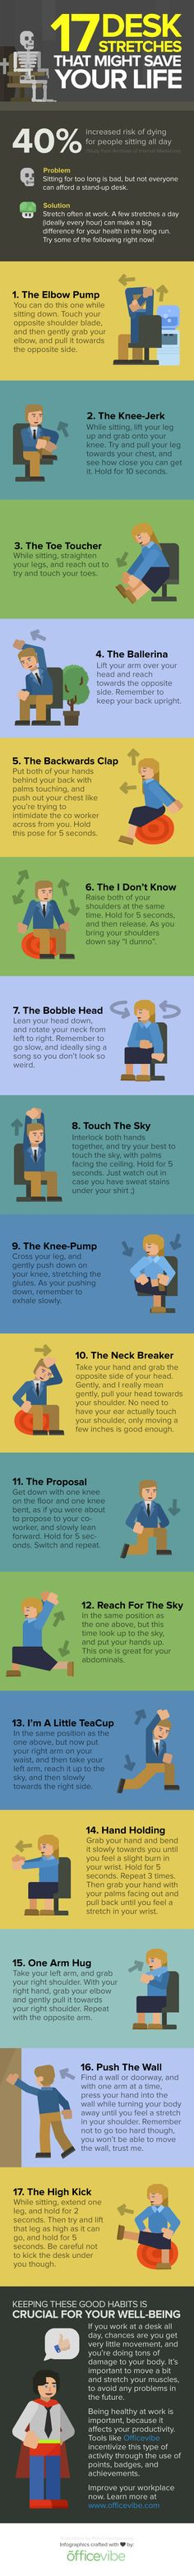 No Time For The Gym? Do These Effective Desk Stretches Instead